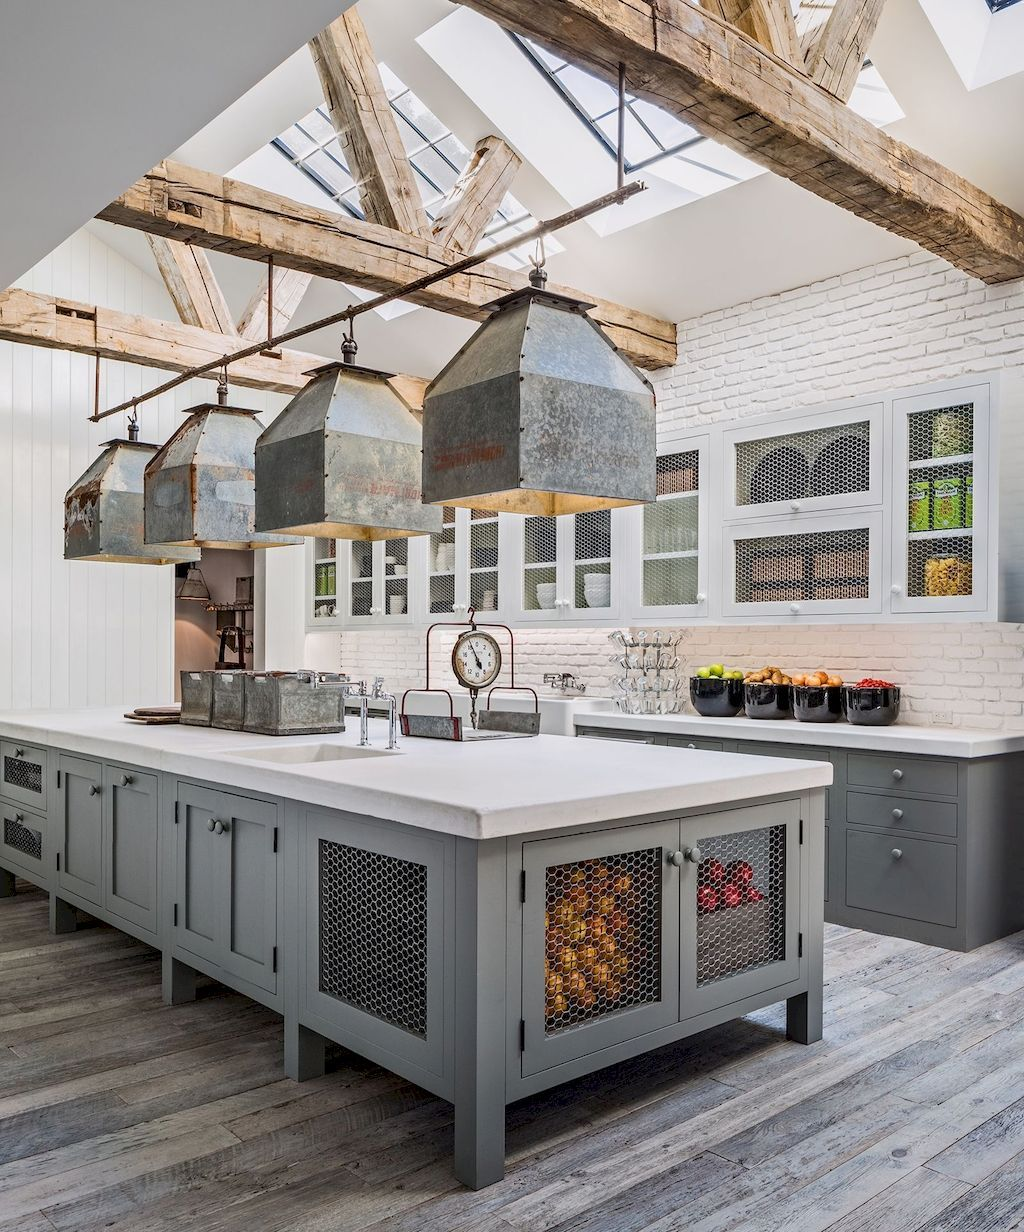 18 Awe Inspiring Modern Home Exterior Designs That Look Casual: 12 Inspiring Modern Farmhouse Designs For The Perfect Kitchen